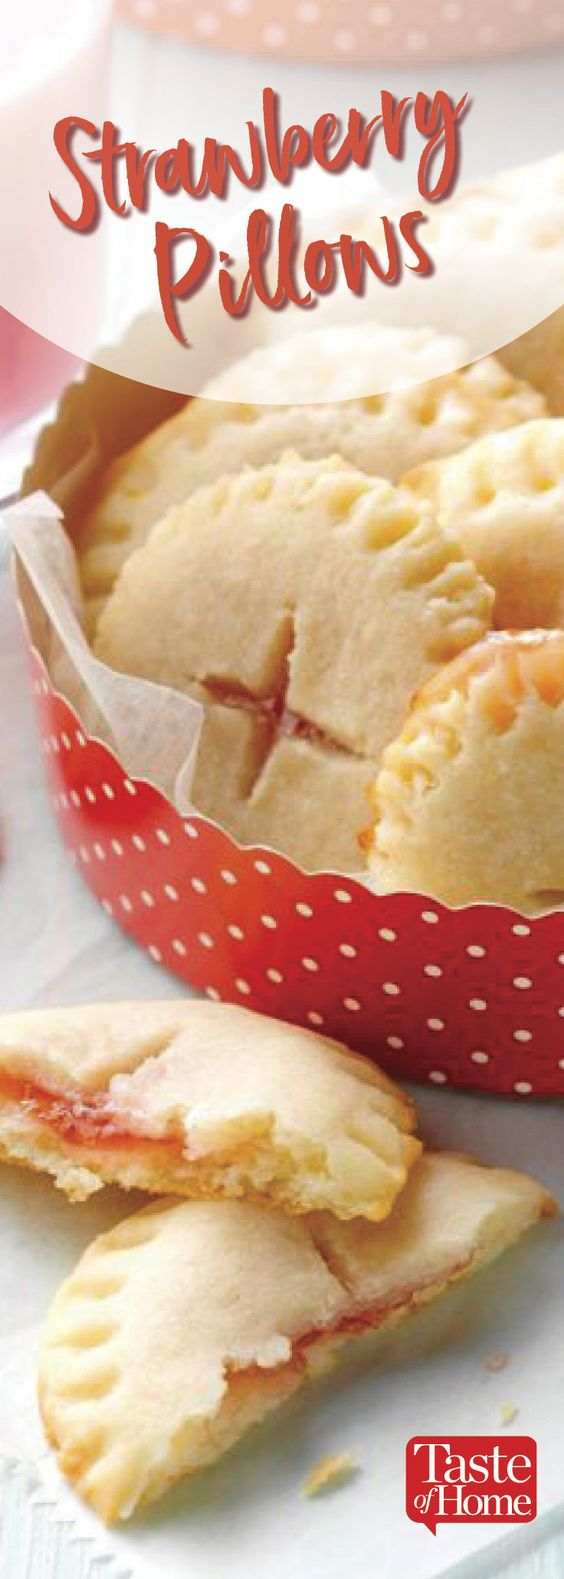 Strawberry Pillows #cookies #cookierecipes #easycookierecipes #strawberry #pillows #strawberrypillows